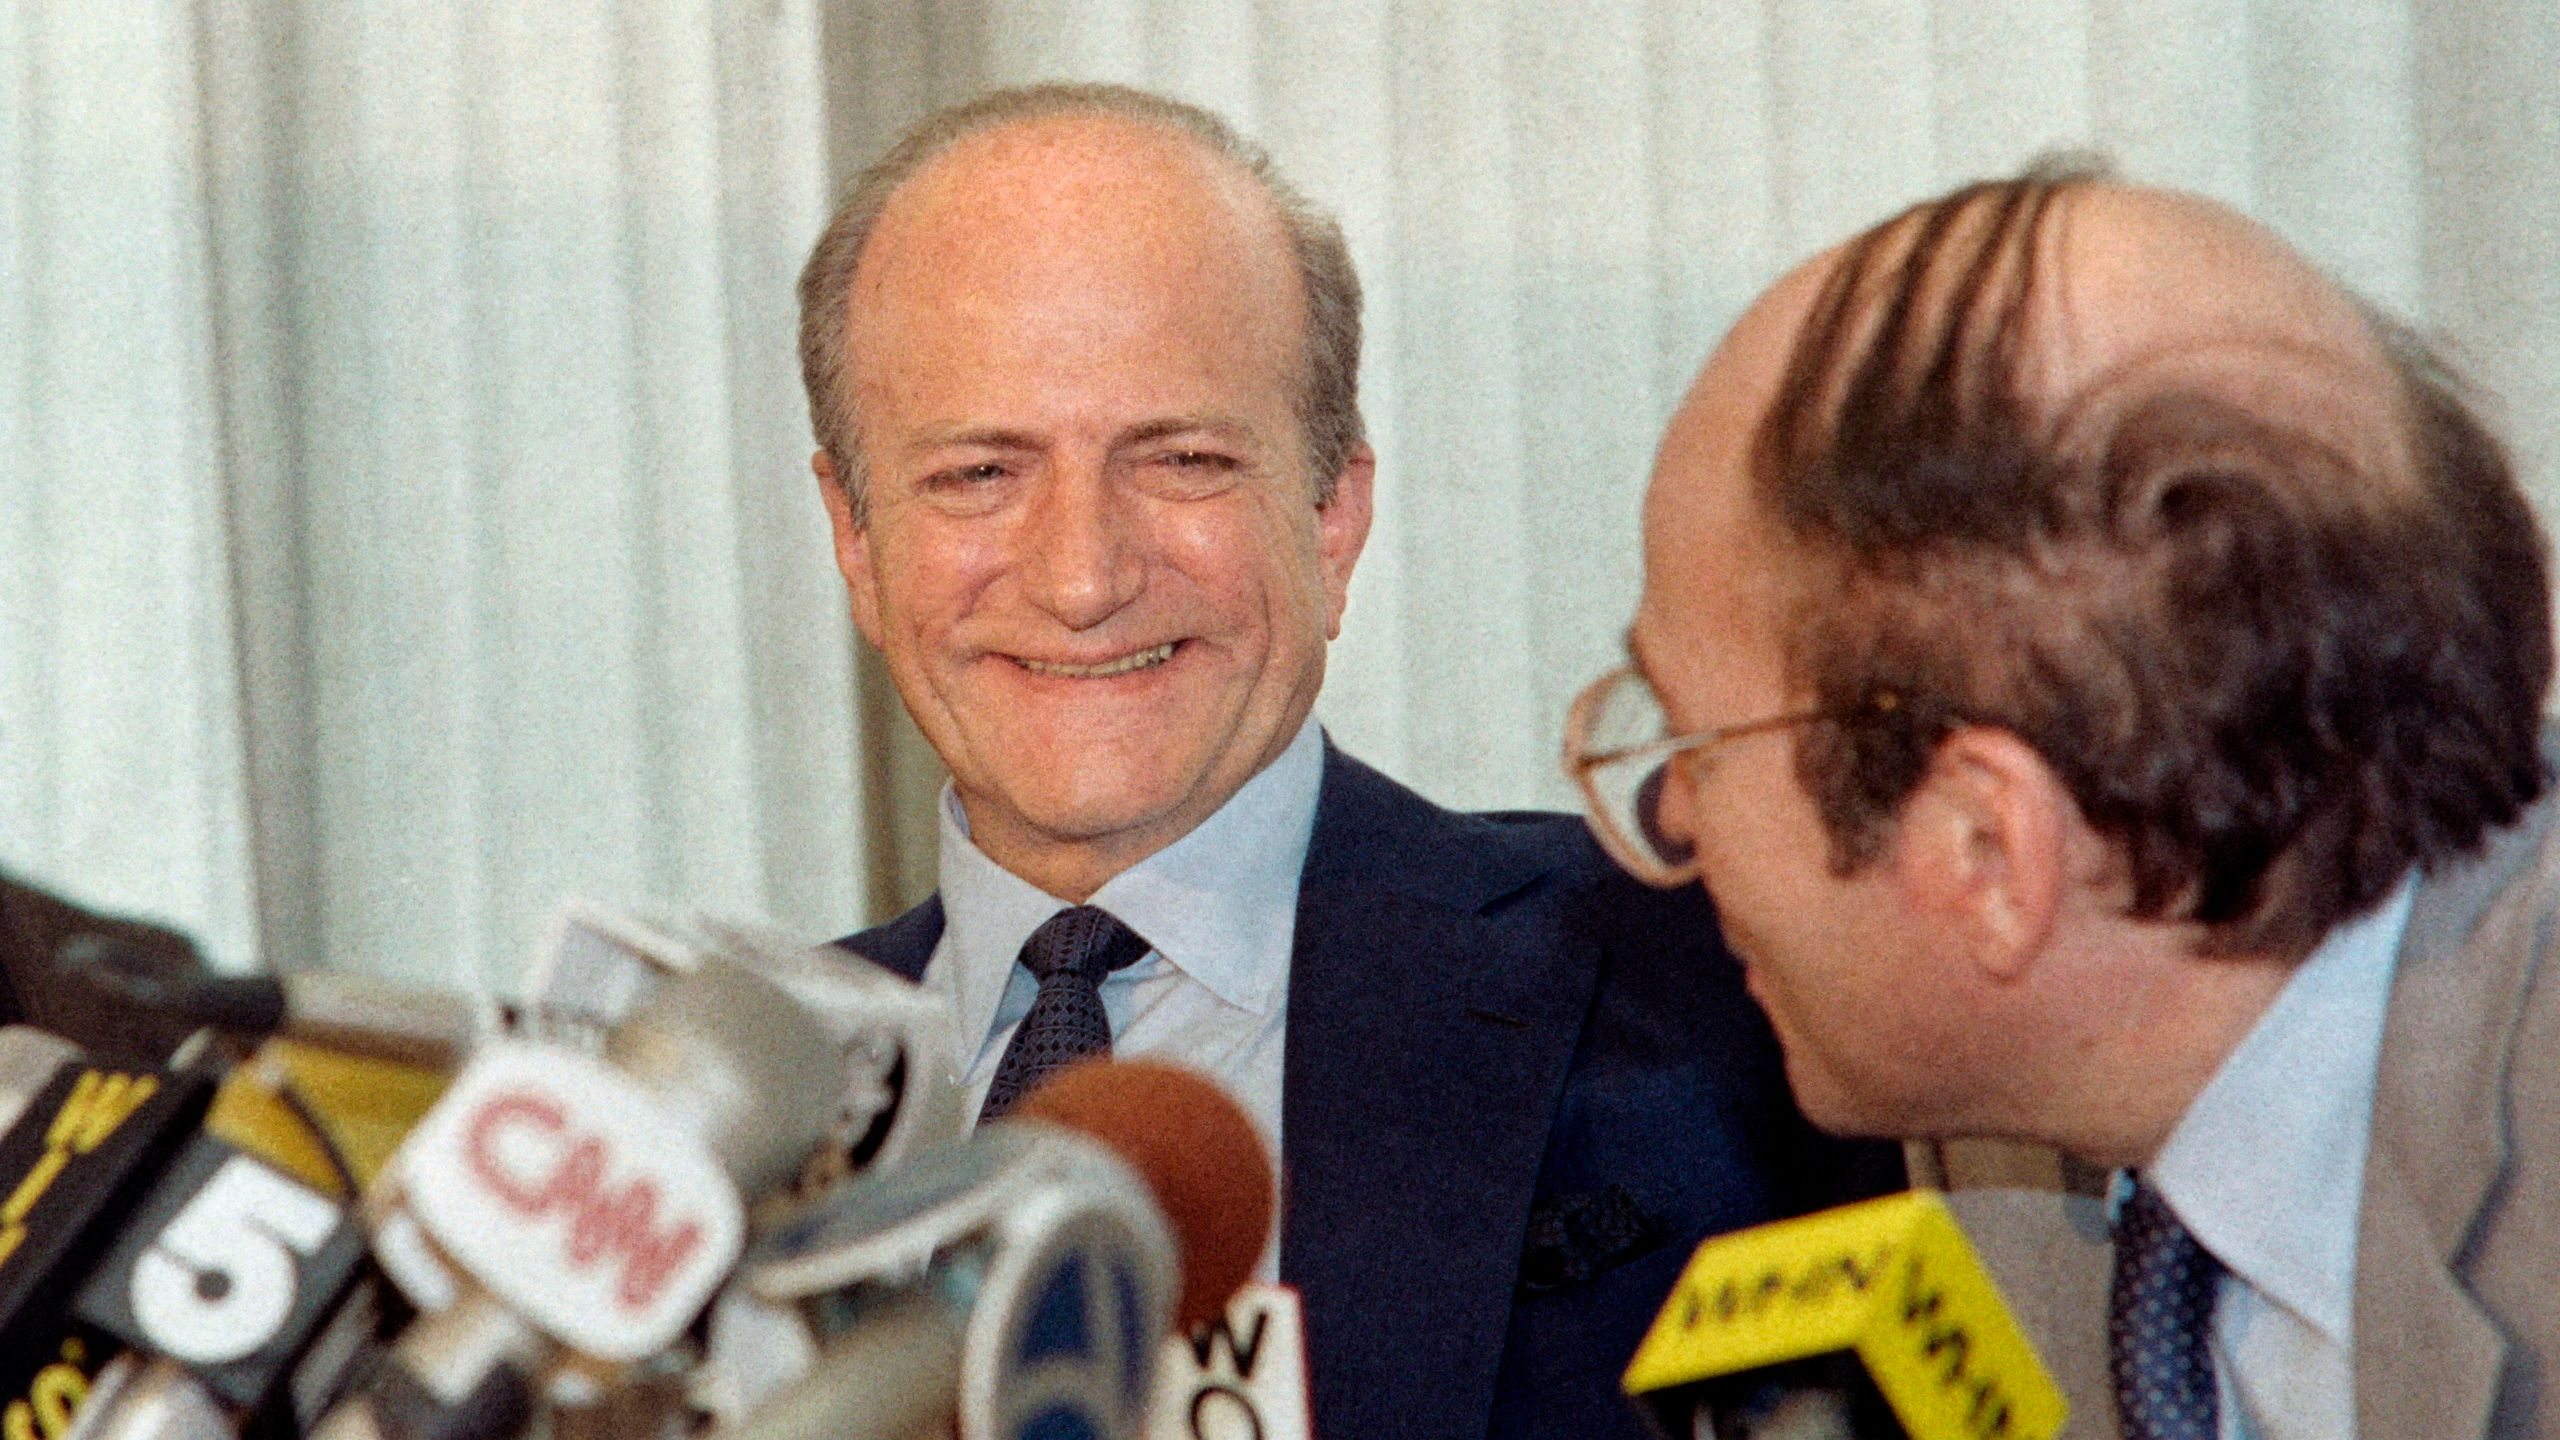 Socialite Claus von Bülow, accused of the attempted murder of his wife Sunny von Bülow in 1979, is seen during a New York press conference on June 11, 1985. (Credit: Susan May Tell / AFP / Getty Images)